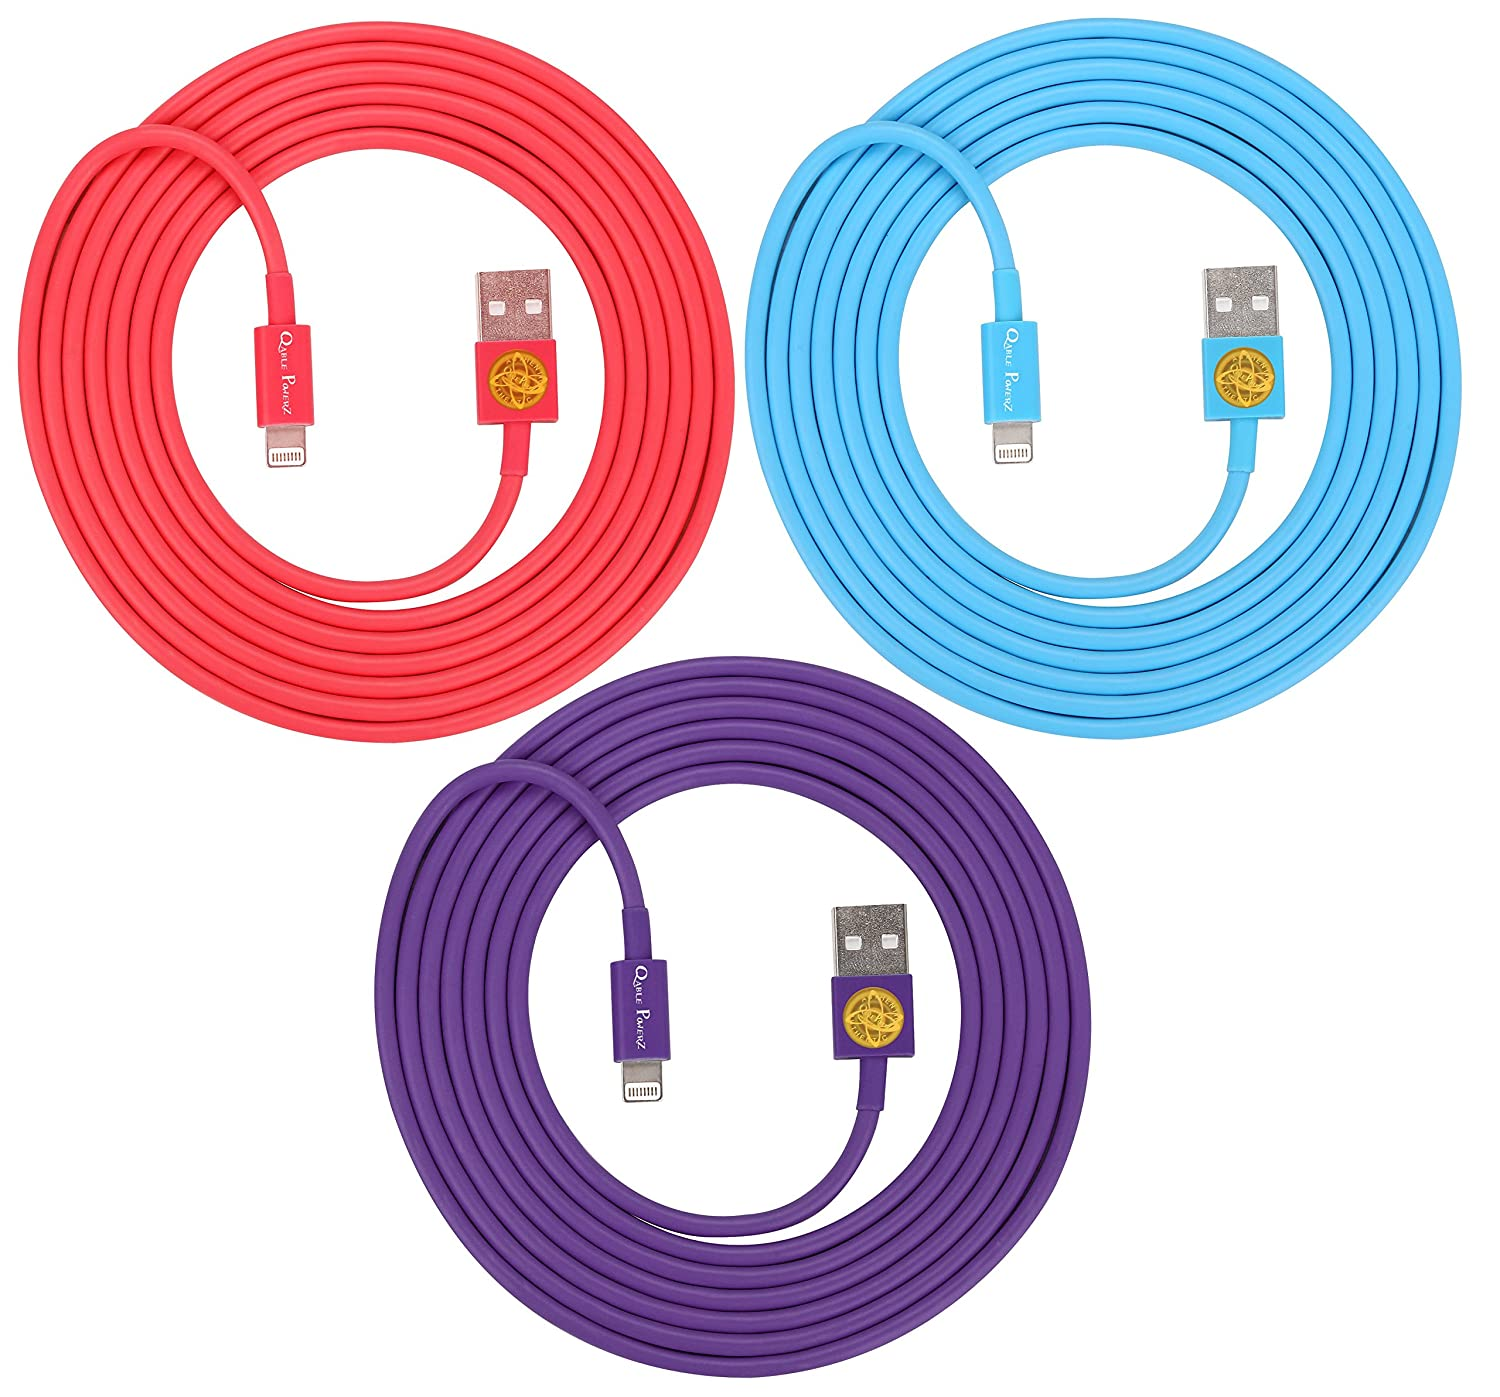 цены на 3PCS of HEAVY-DUTY Lightning to USB Sync Charger Data Cable Cord 6ft / 2m for iPhone 5s / 5c / 5, iPhone 6 / 6plus, ipad Air / Mini / iPod Touch 5 and Nano 7(purple. red. blue) в интернет-магазинах